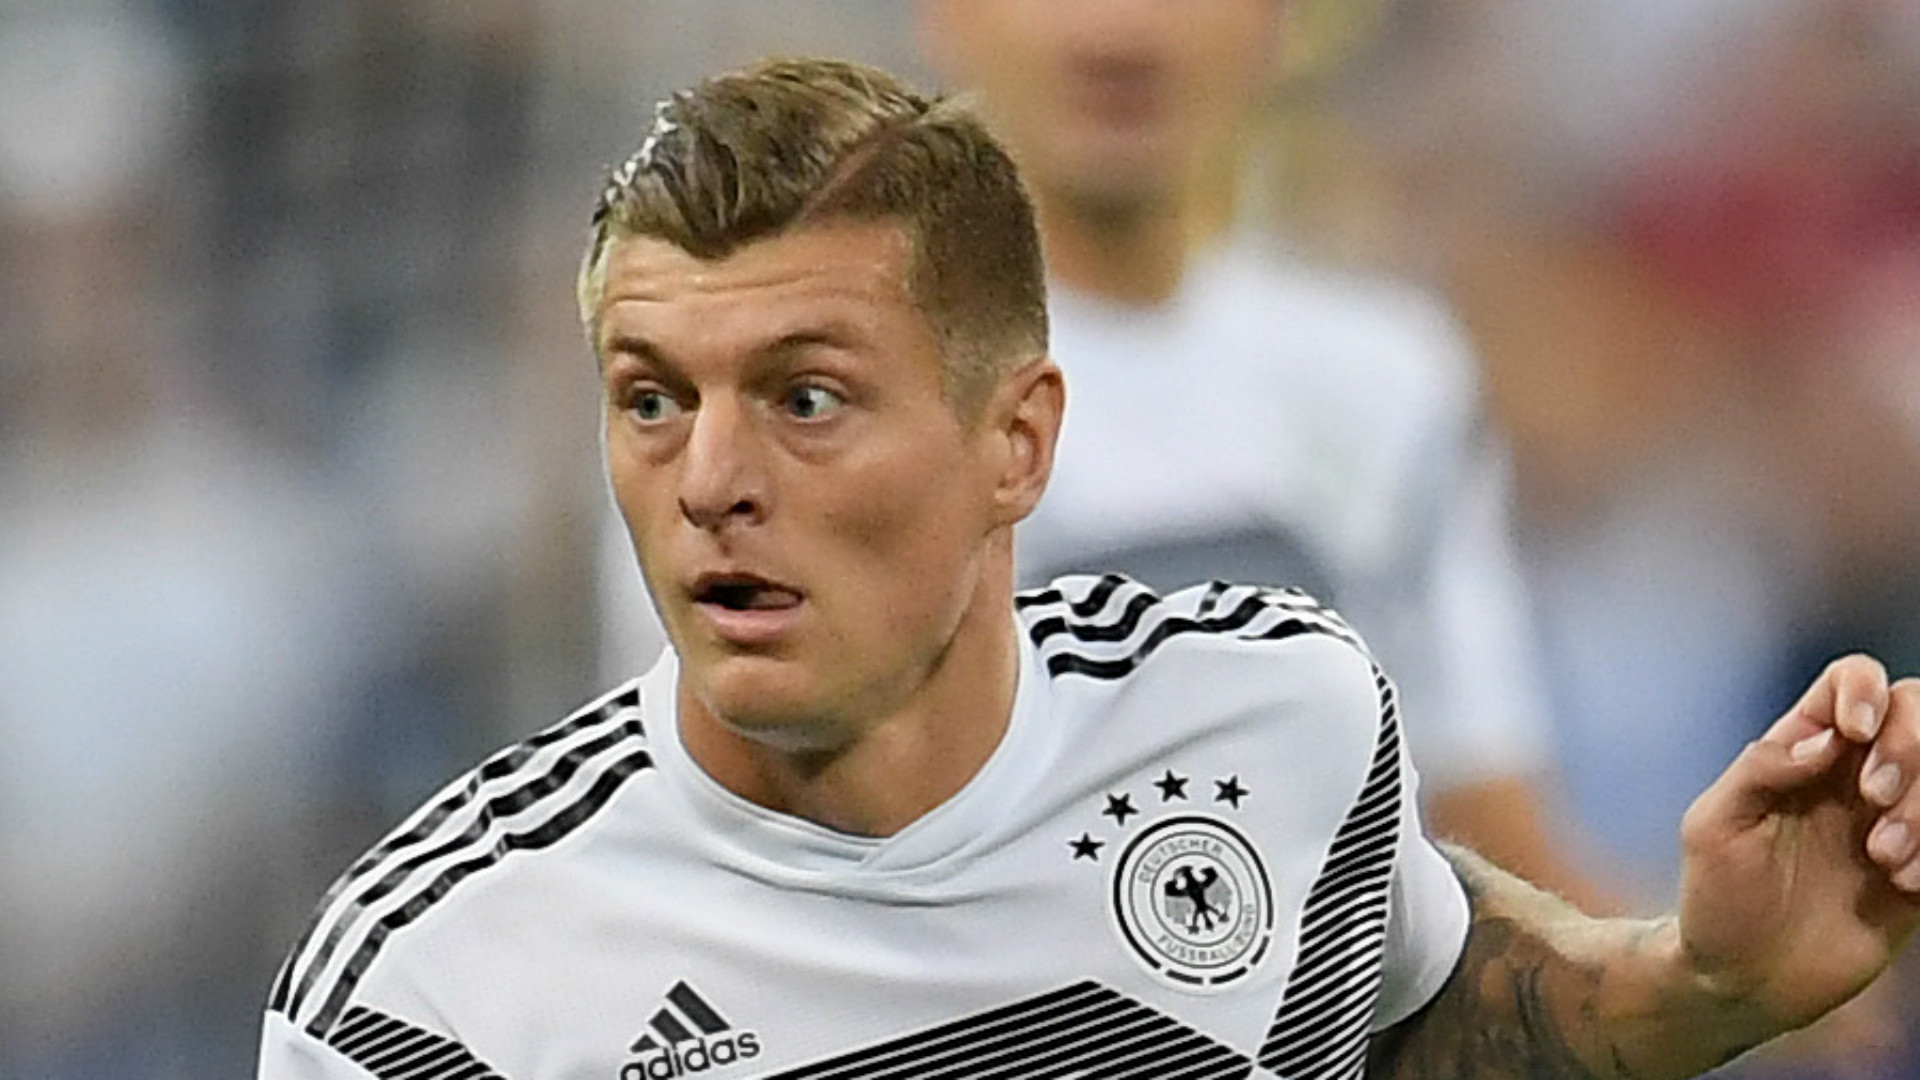 'We're well on our way' - Kroos wants young Germany side to show signs of progress against Netherlands